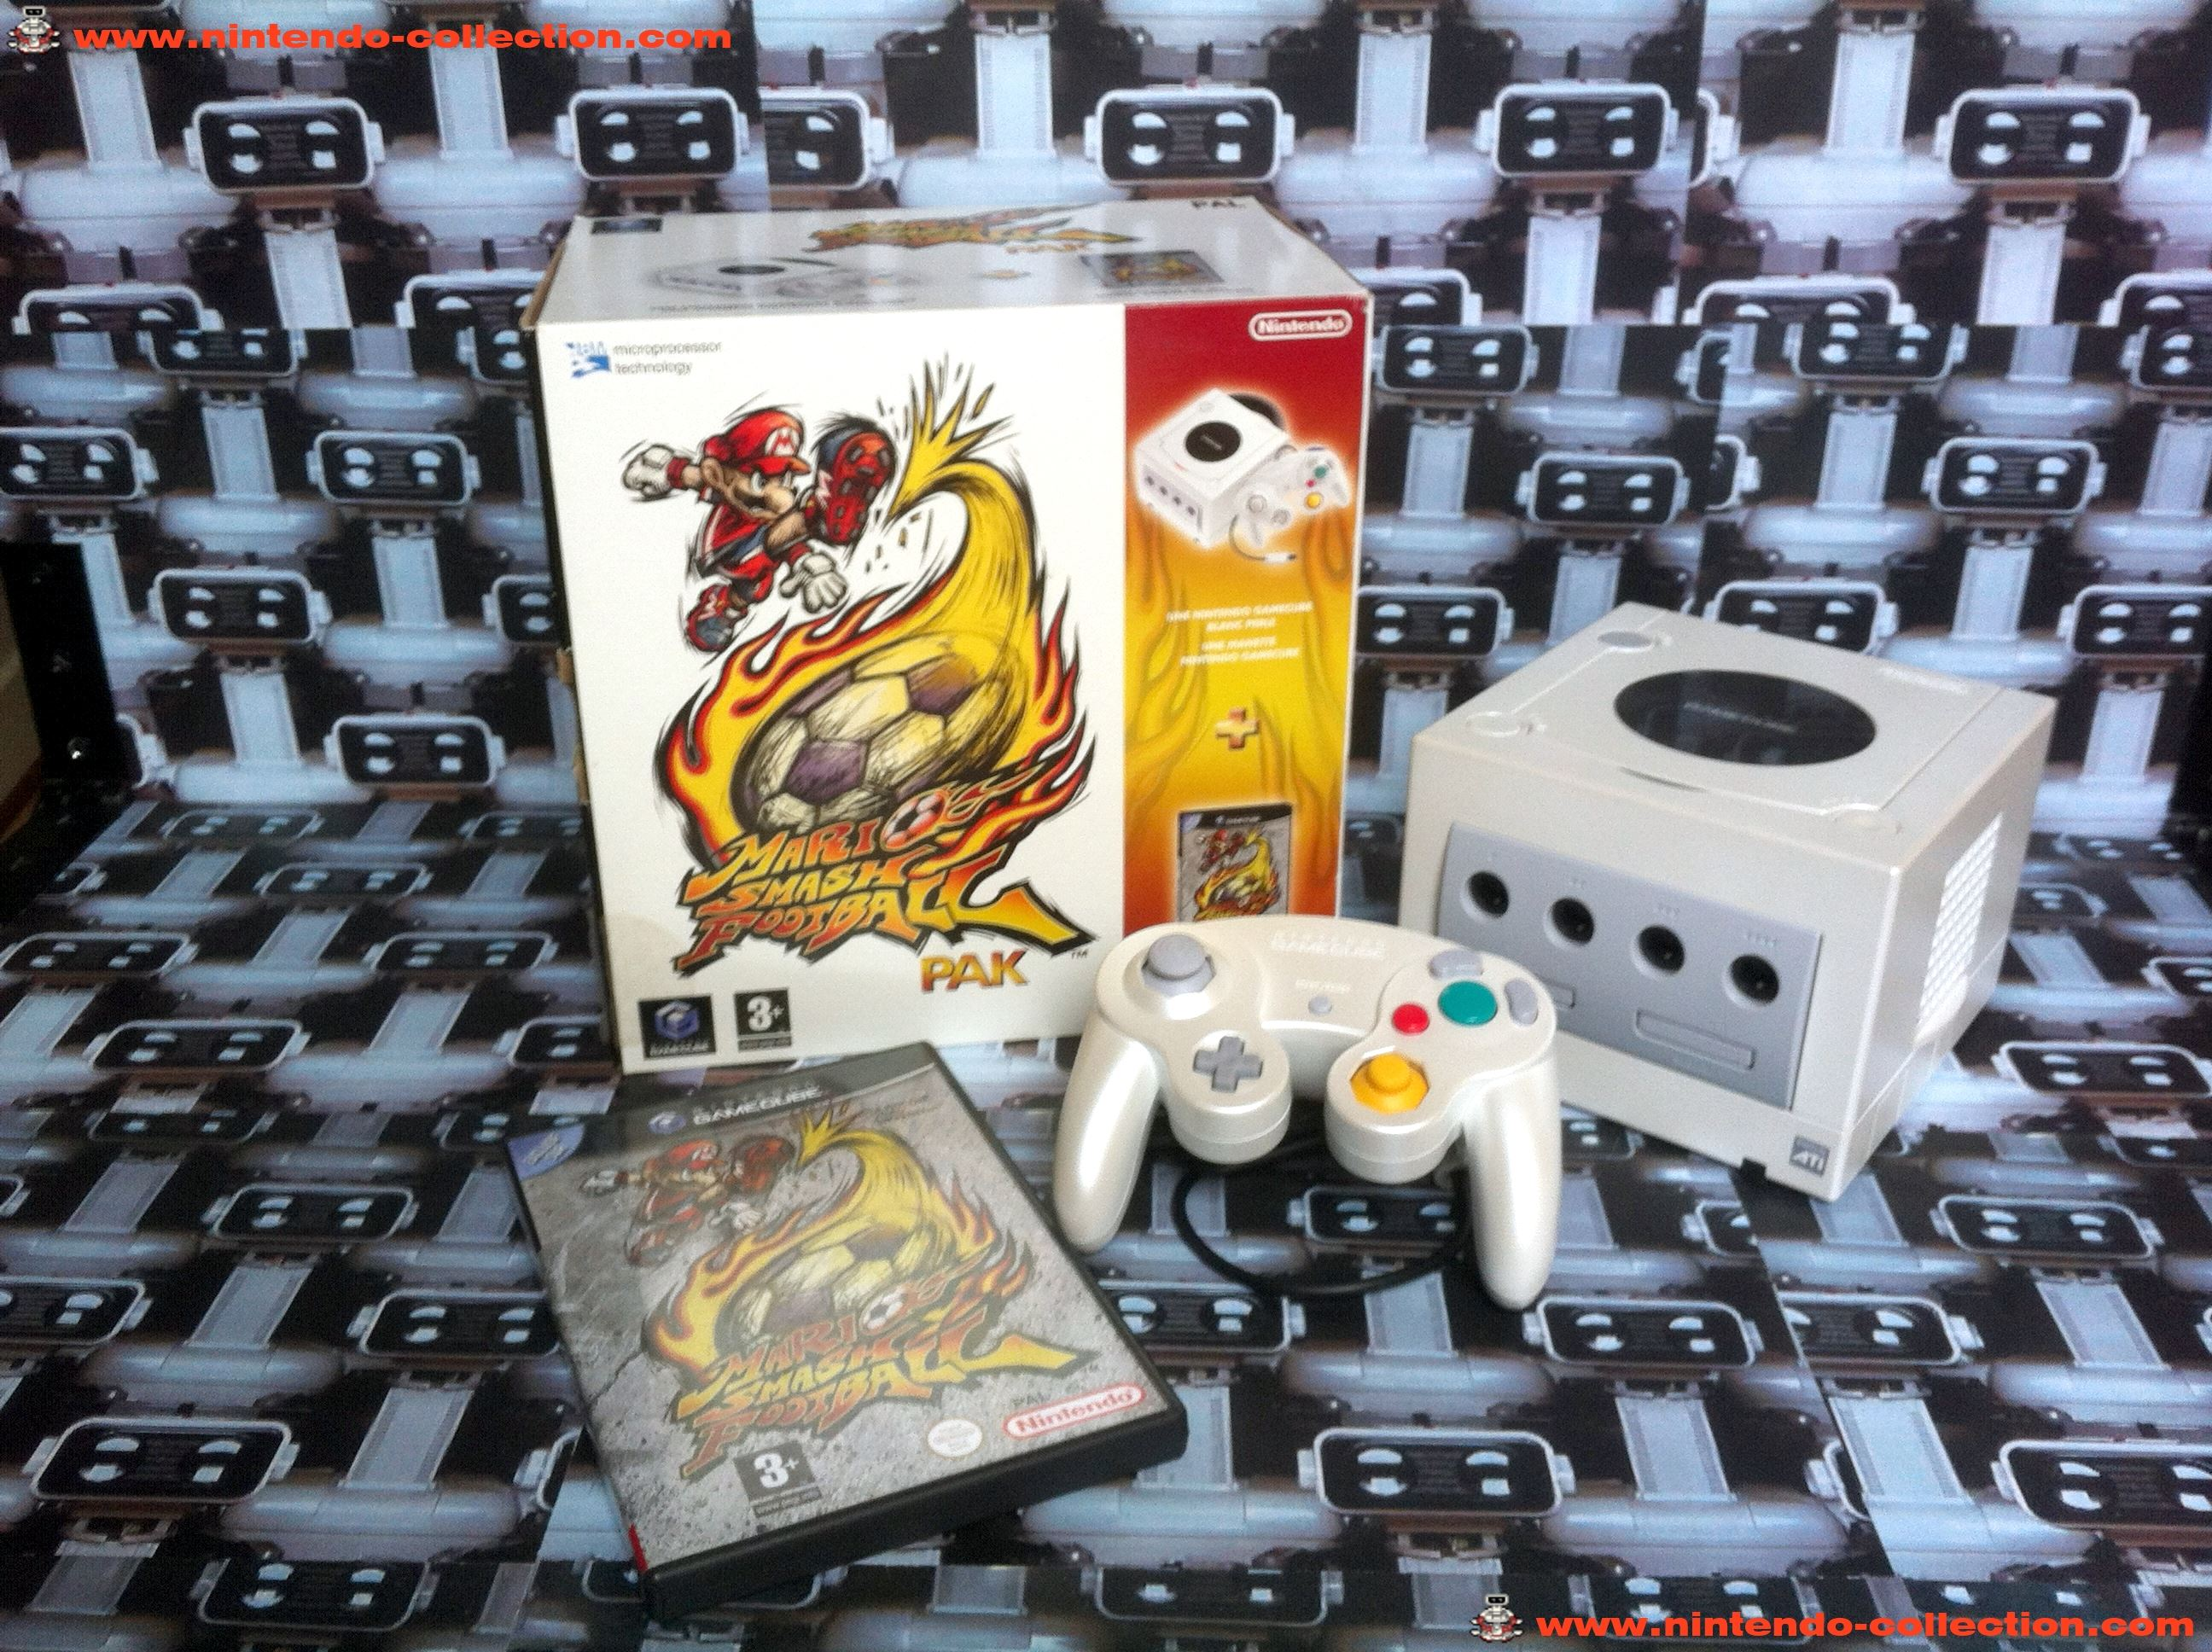 www.nintendo-collection.com - Gamecube Mario smash Footbal Limited Edition White Blanche European Eu